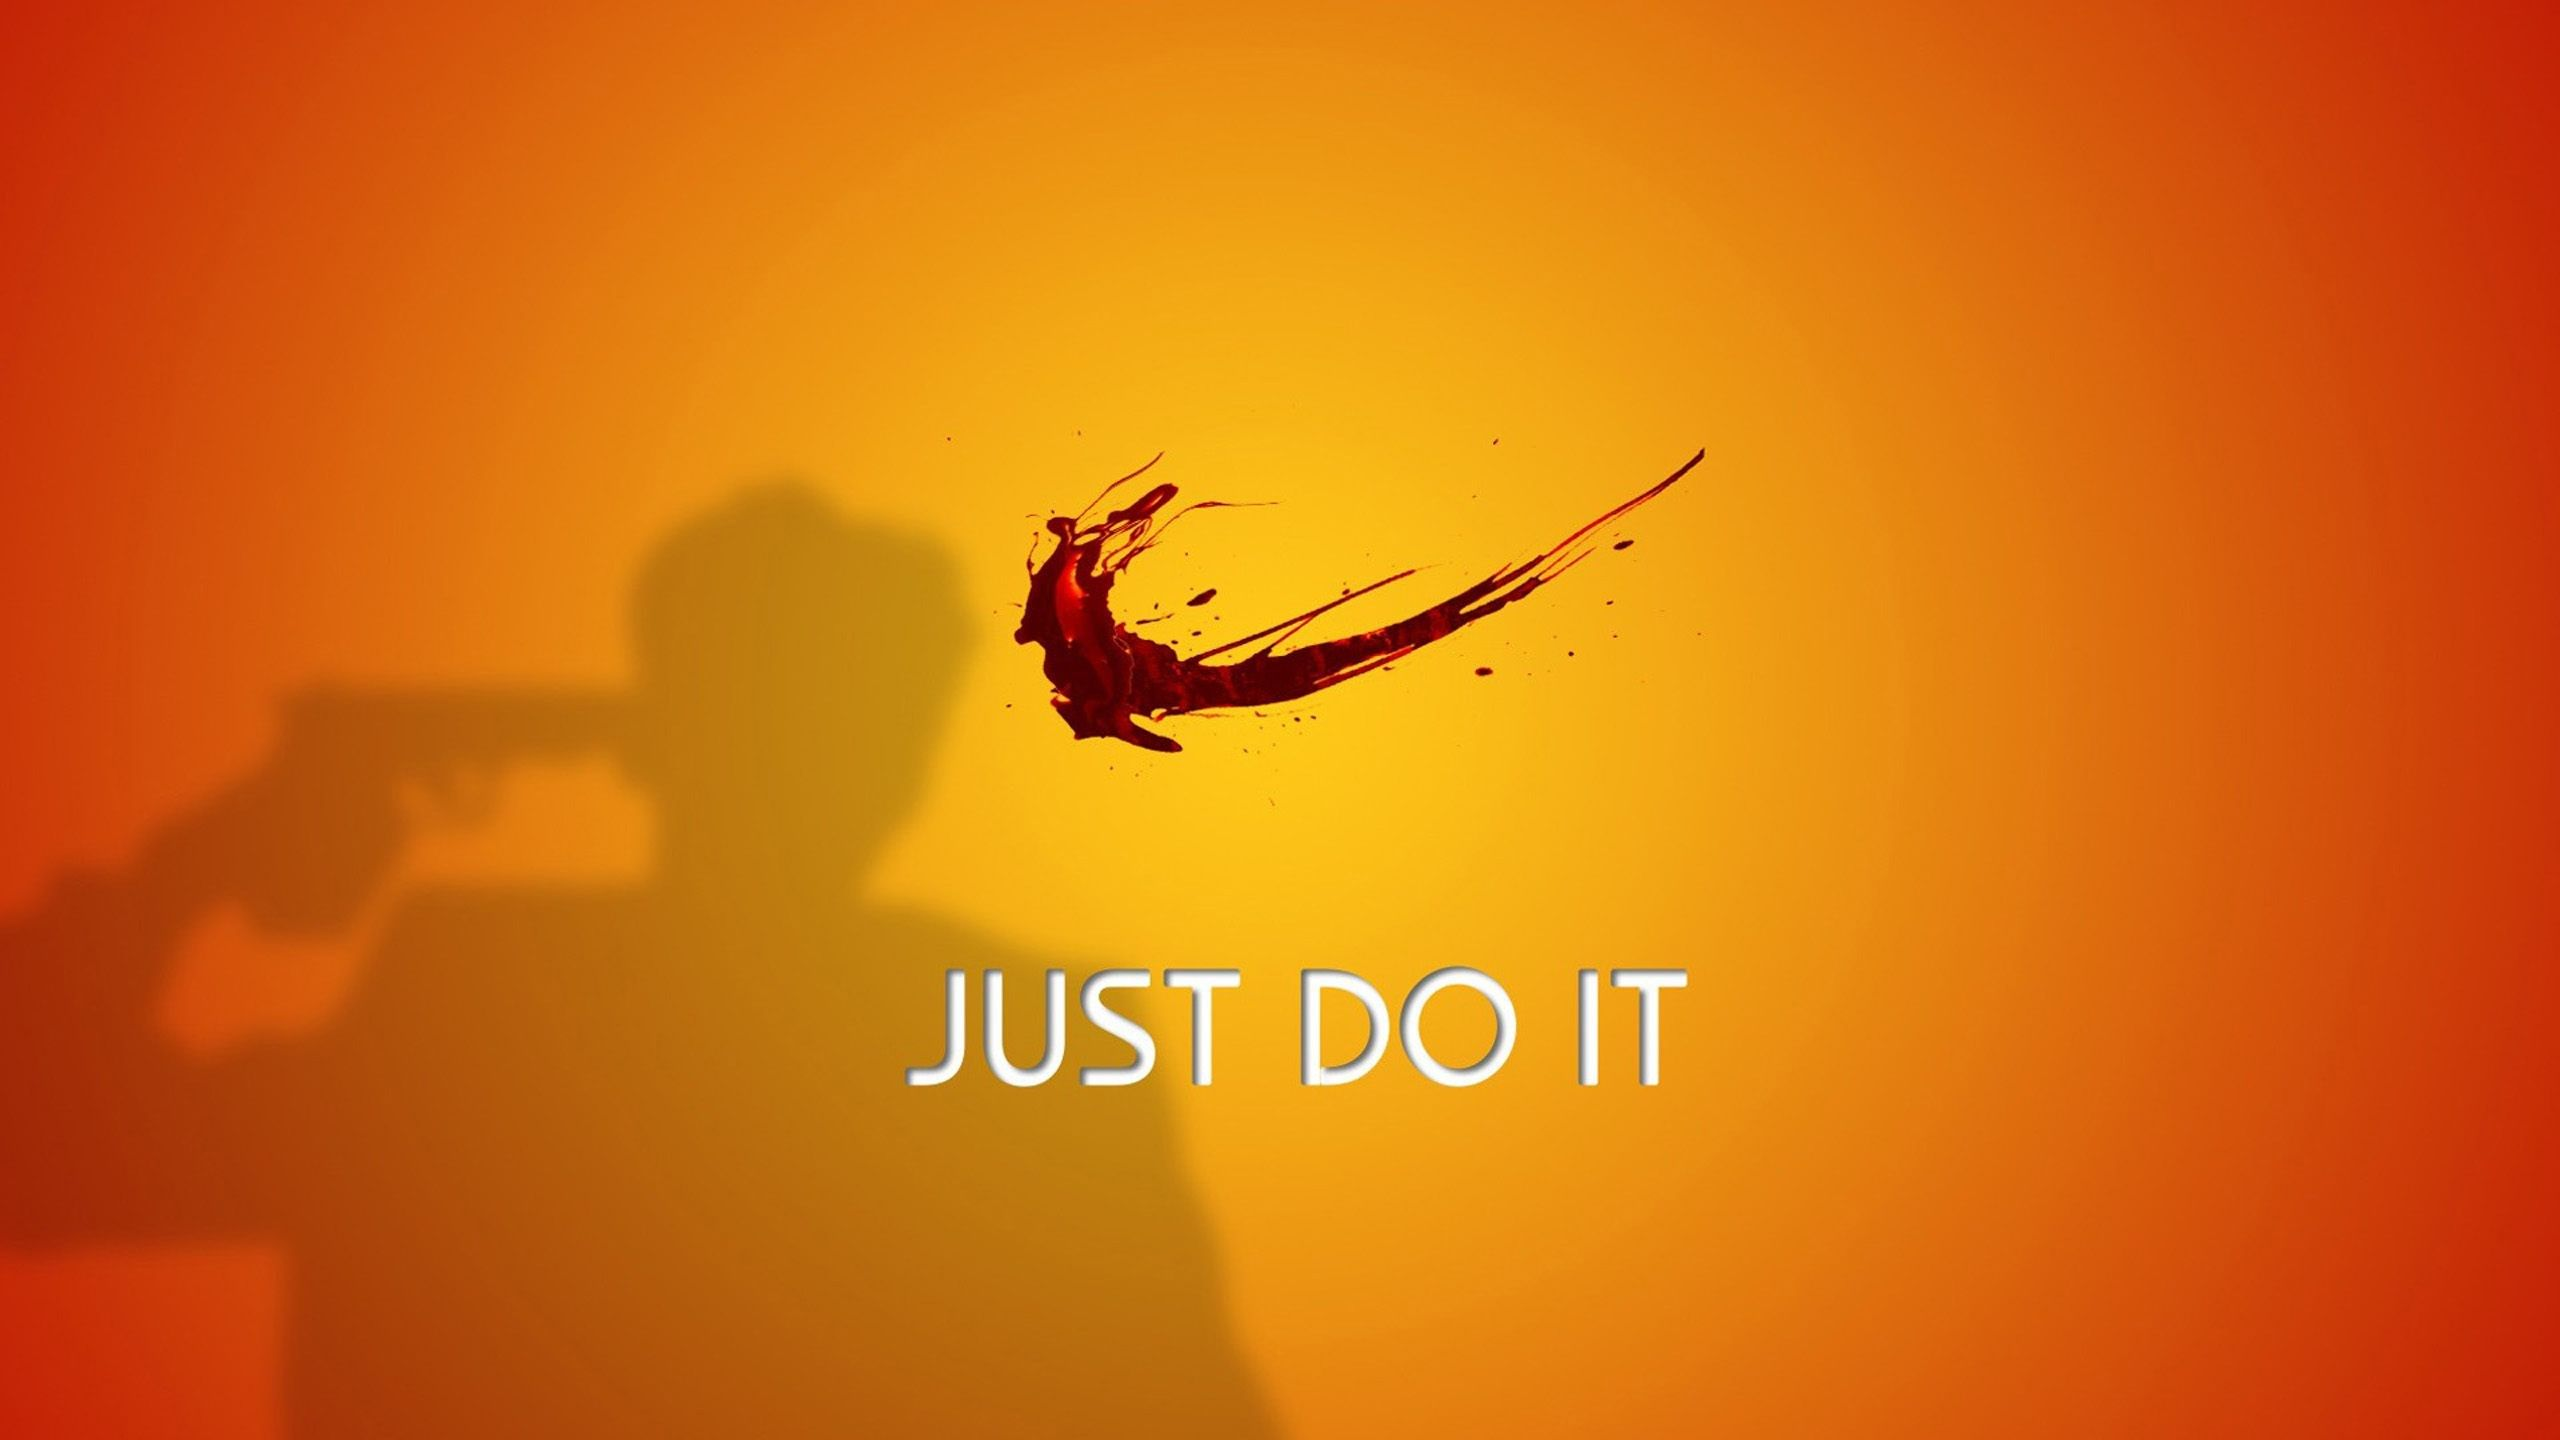 Do It Just Do It Nike Funny Wallpaper